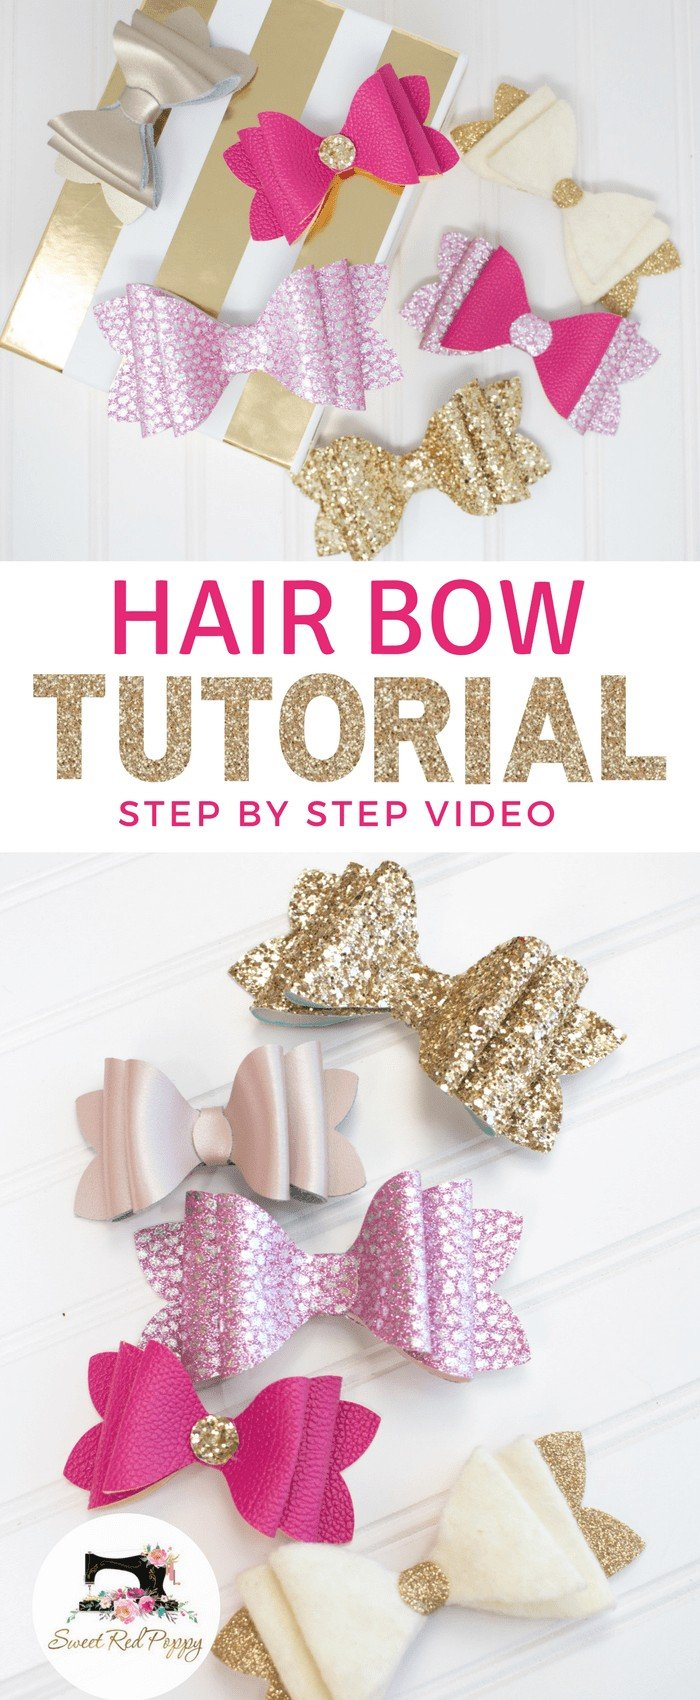 How to Make Hair Bows: Stacked French Hair Bow Tutorial: staked French hair bow tutorial shared by top US craft blog, Sweet Red Poppy: Chunky 3 Layer Girls French Bow DIY & Tutorial